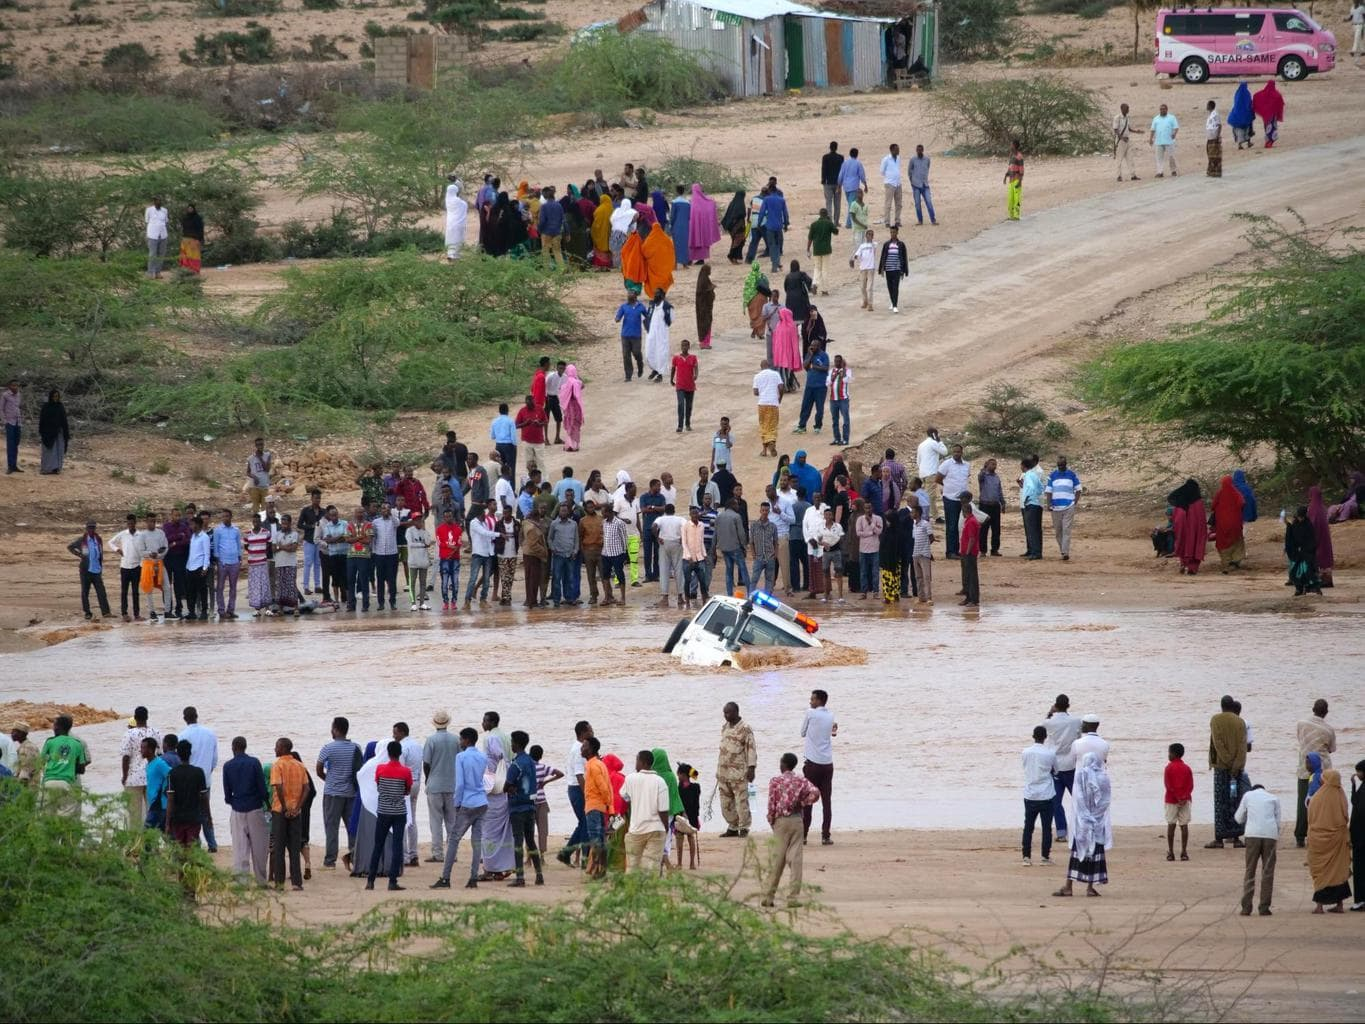 Flash floods cut the road from Hargeisa to Berbera